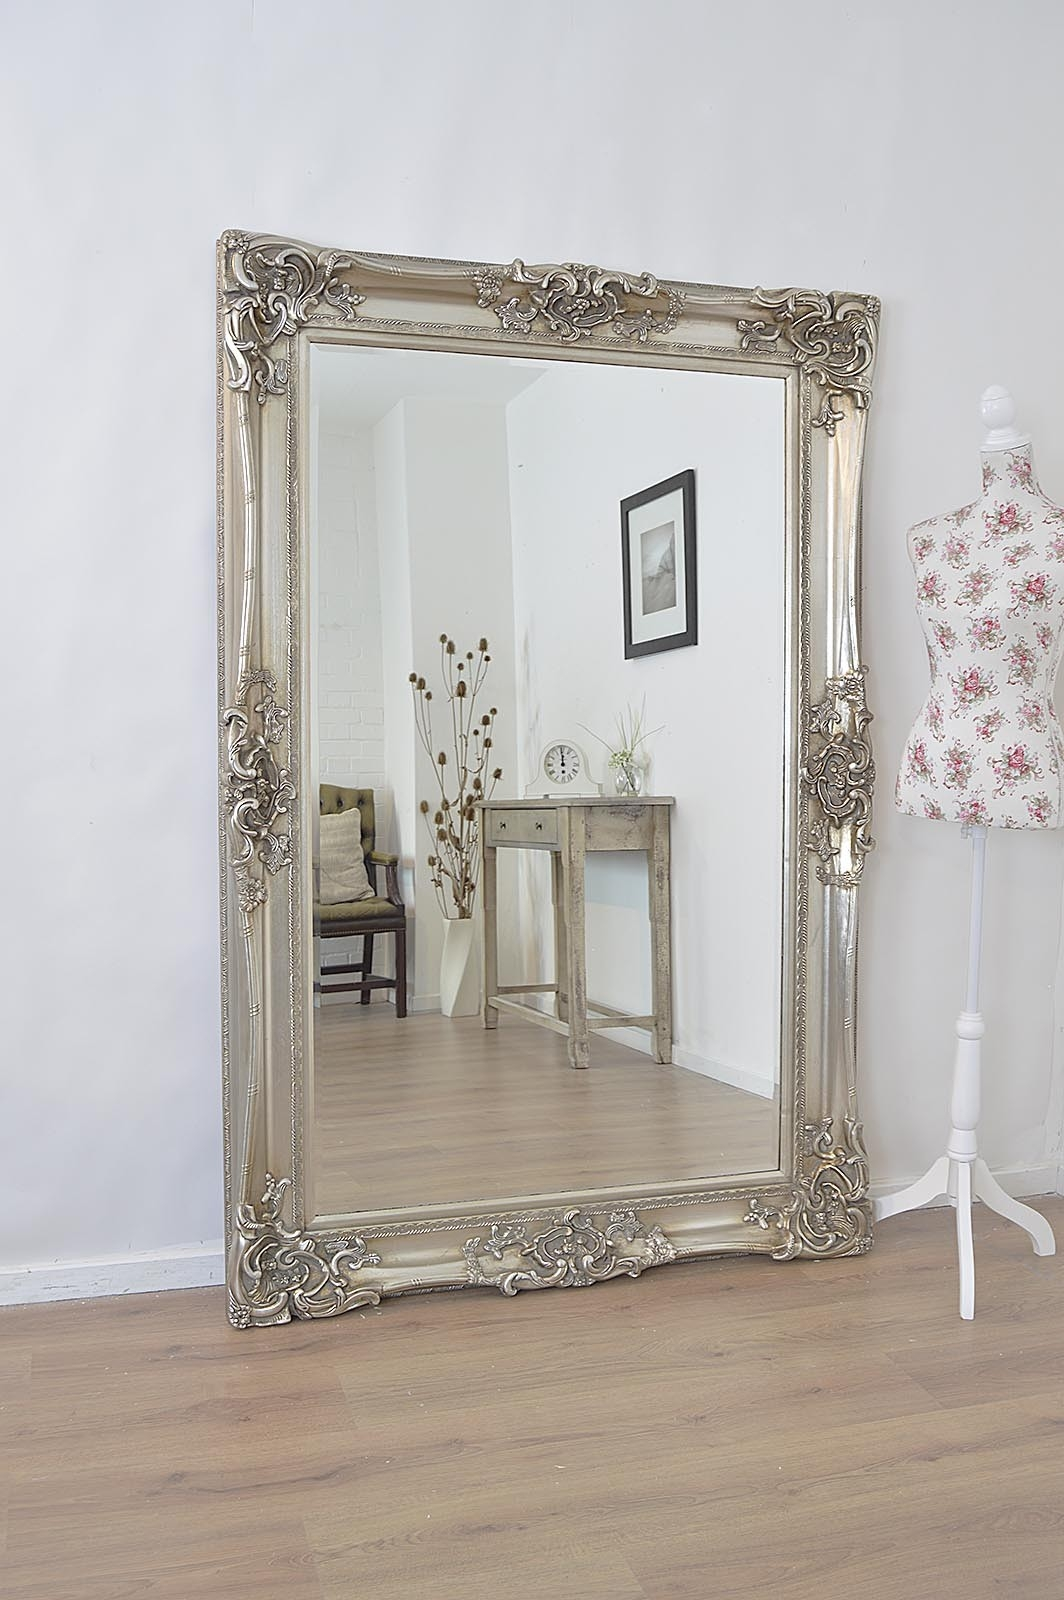 Fine Decoration Huge Wall Mirror Cozy Design Silver Ornate Huge With Regard To Ornate Standing Mirror (View 4 of 15)